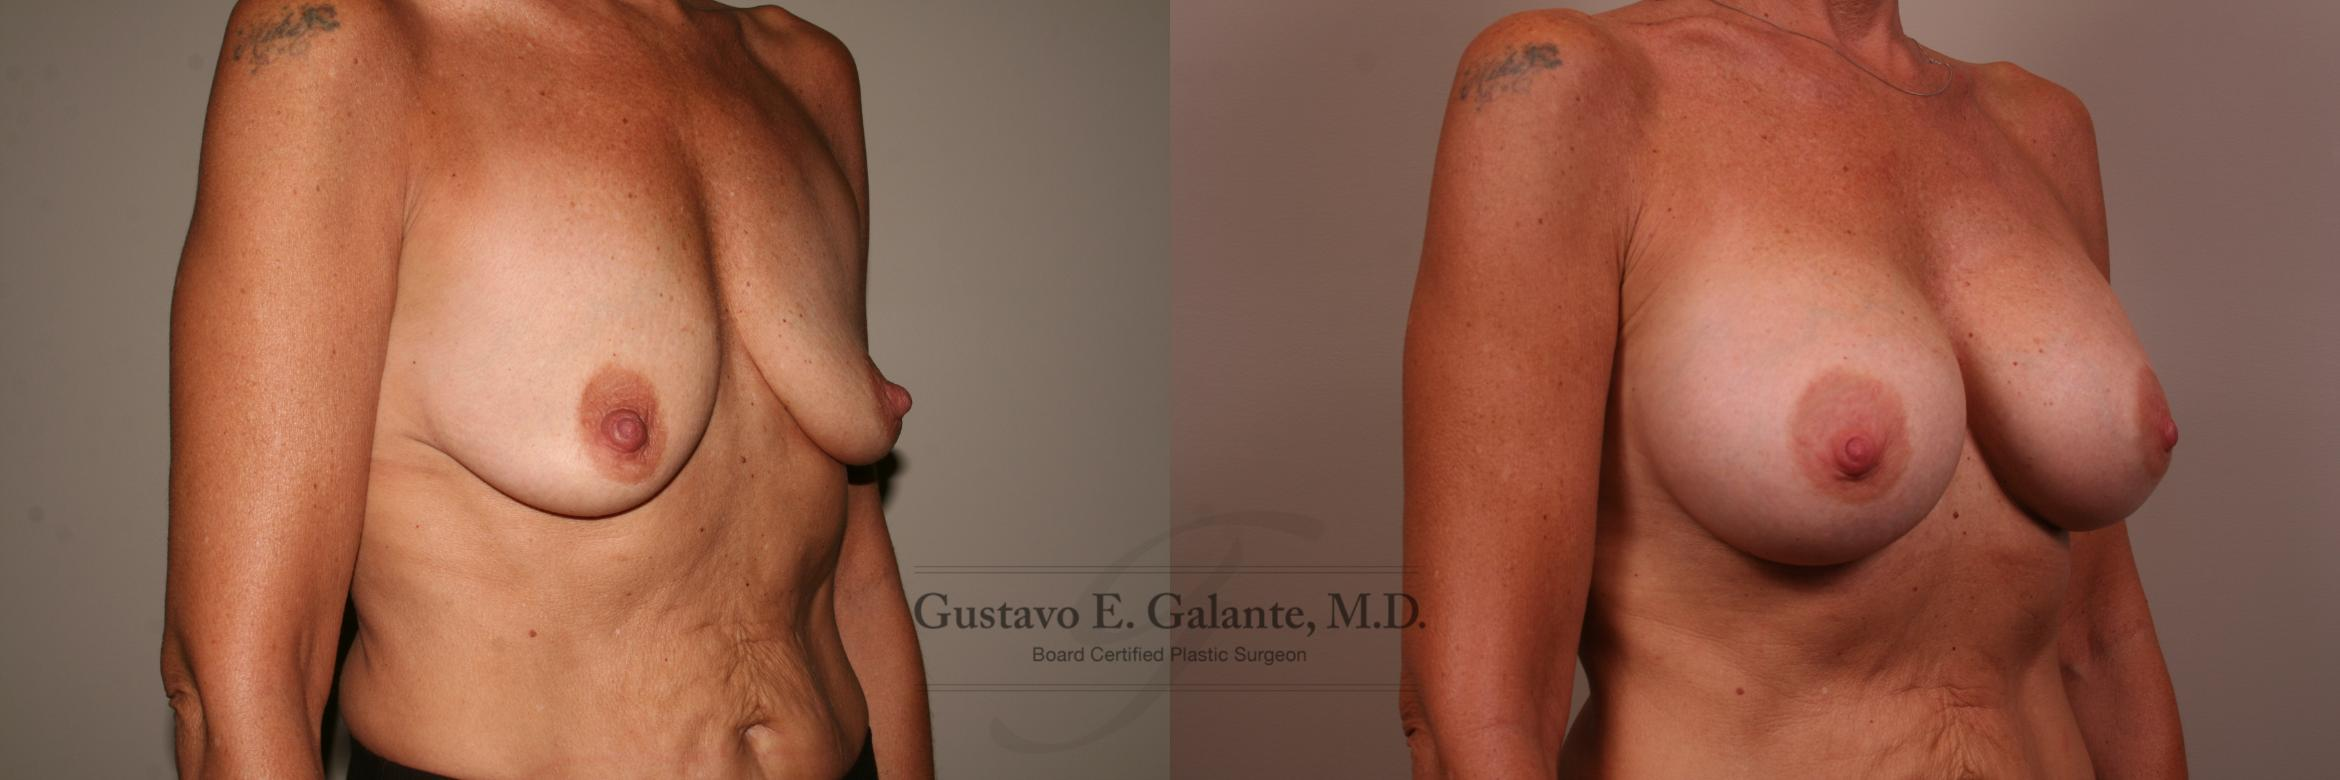 Breast Augmentation Case 139 Before & After View #2 | Valparaiso & Schererville, IN | Gustavo E. Galante, MD